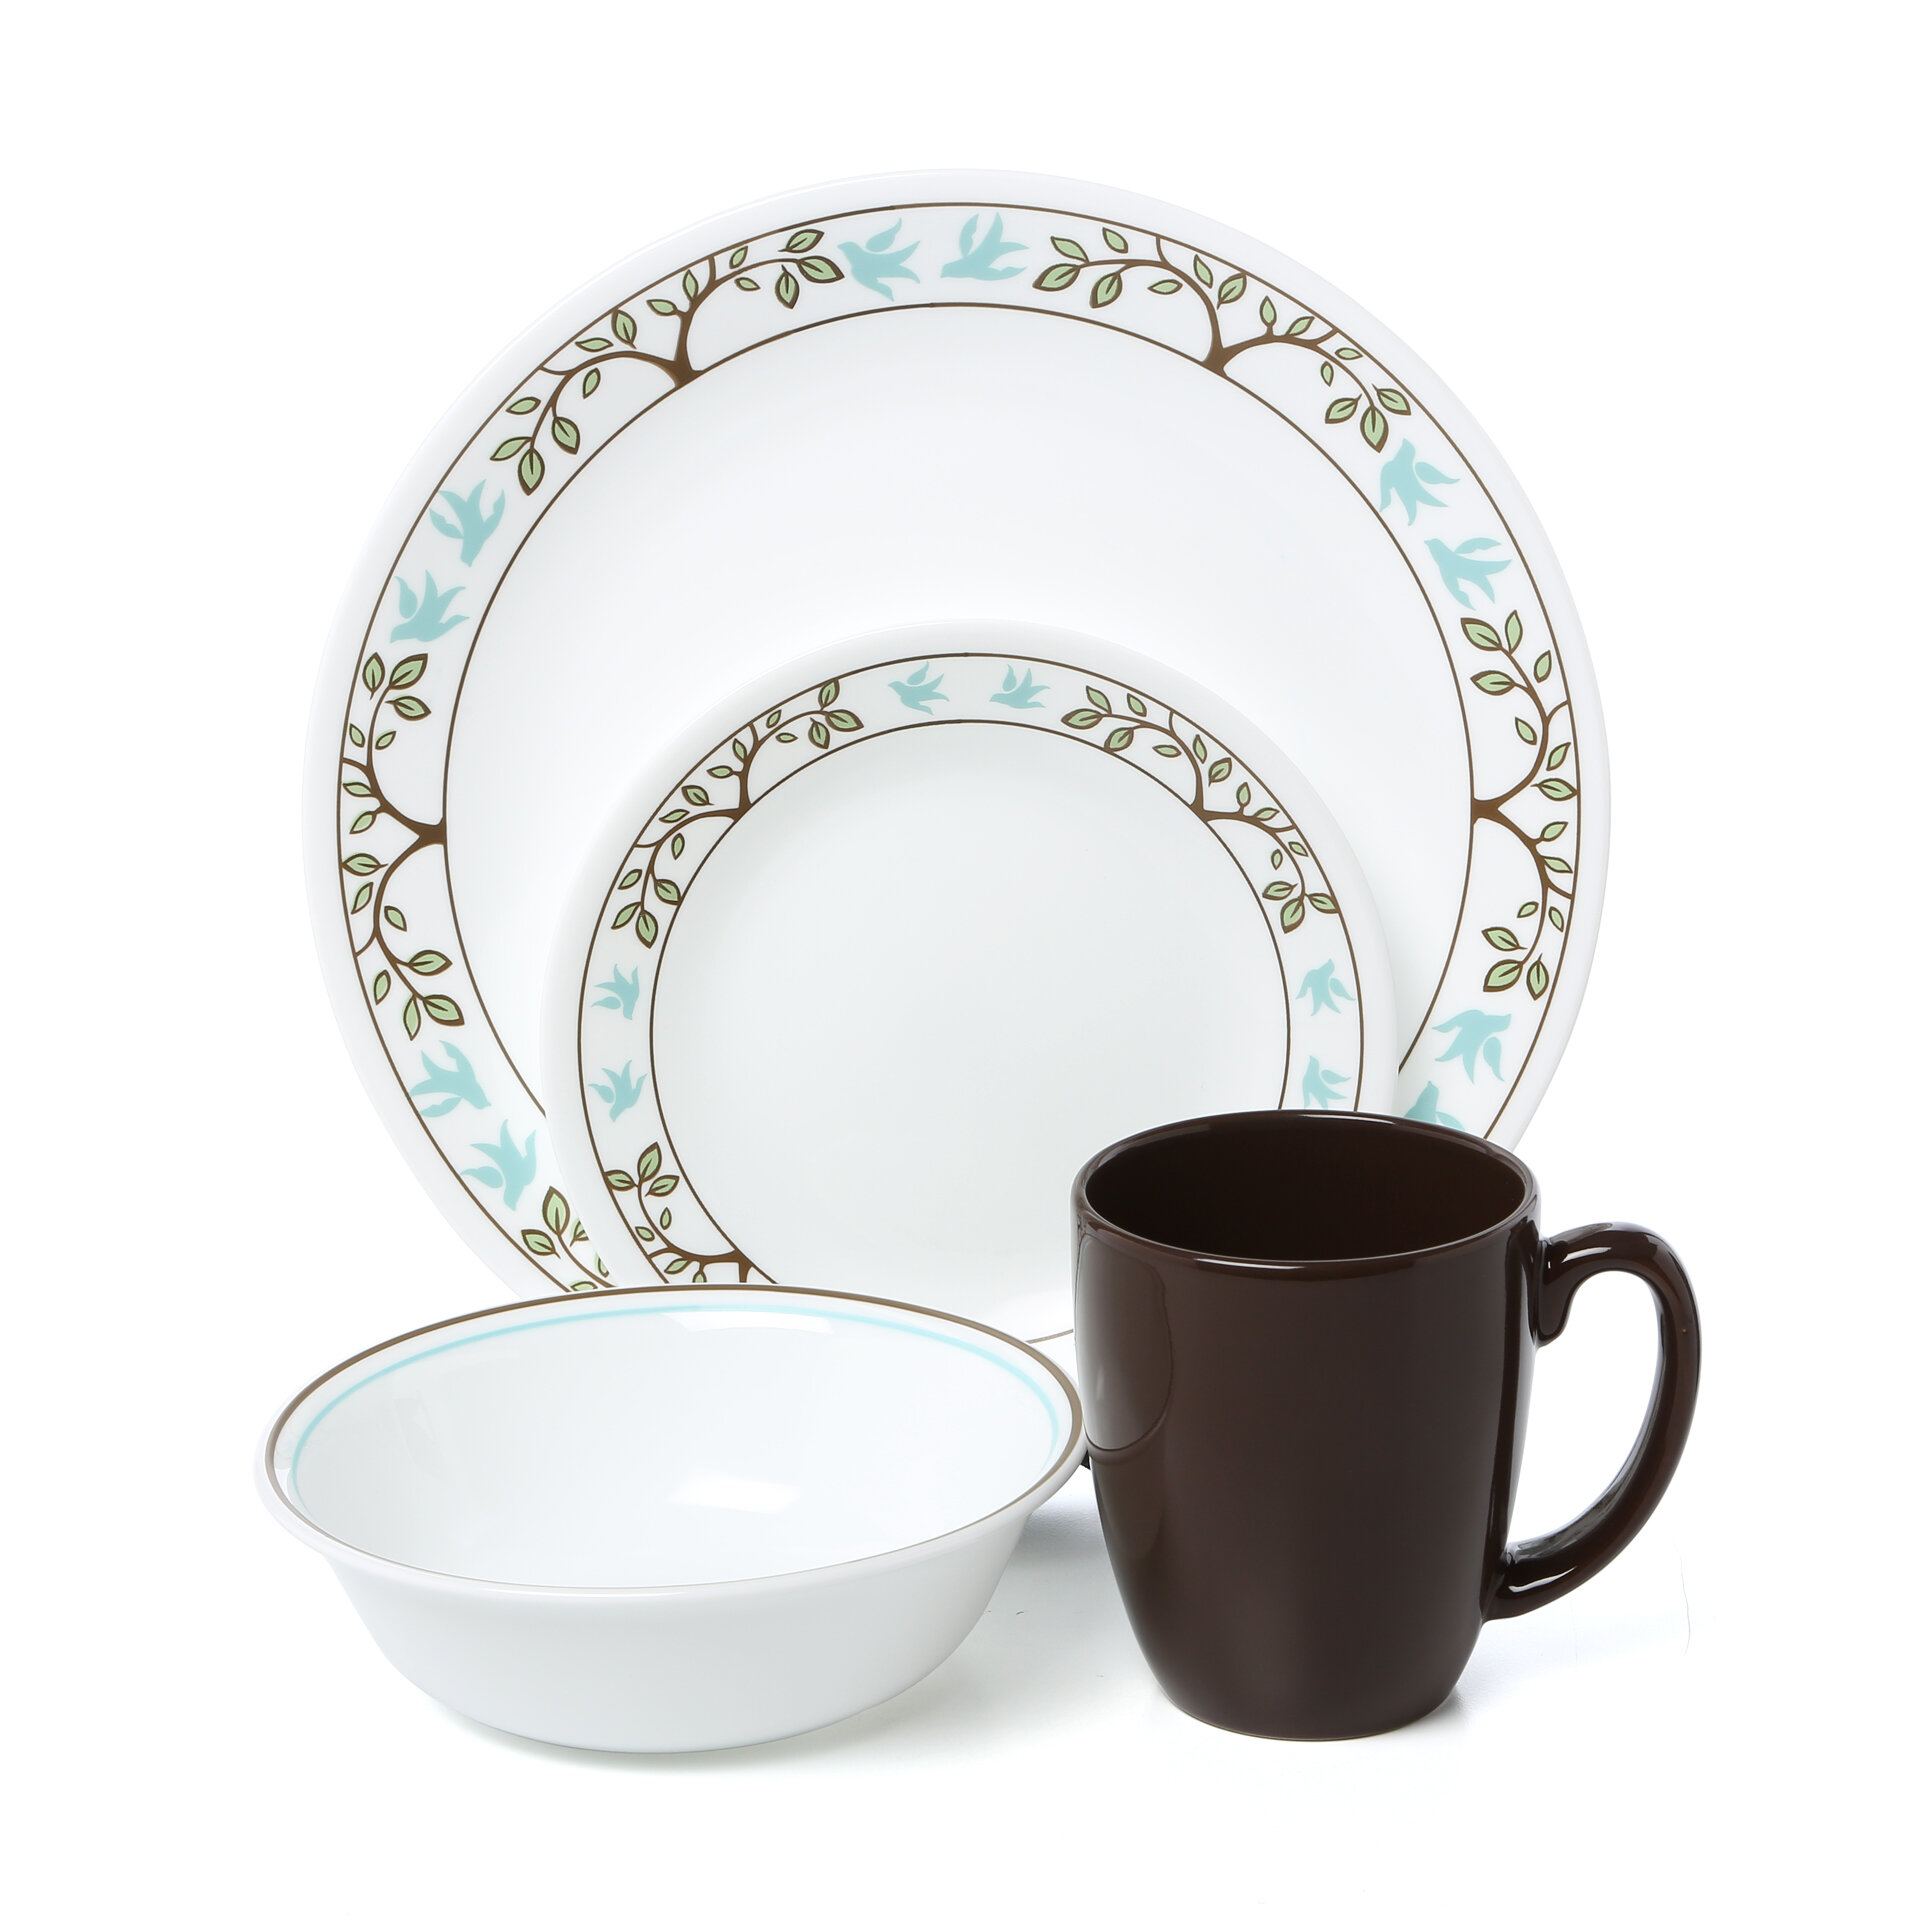 Corelle Livingware Tree Bird 16 Piece Dinnerware Set Service for 4 \u0026 Reviews | Wayfair  sc 1 st  Wayfair & Corelle Livingware Tree Bird 16 Piece Dinnerware Set Service for 4 ...